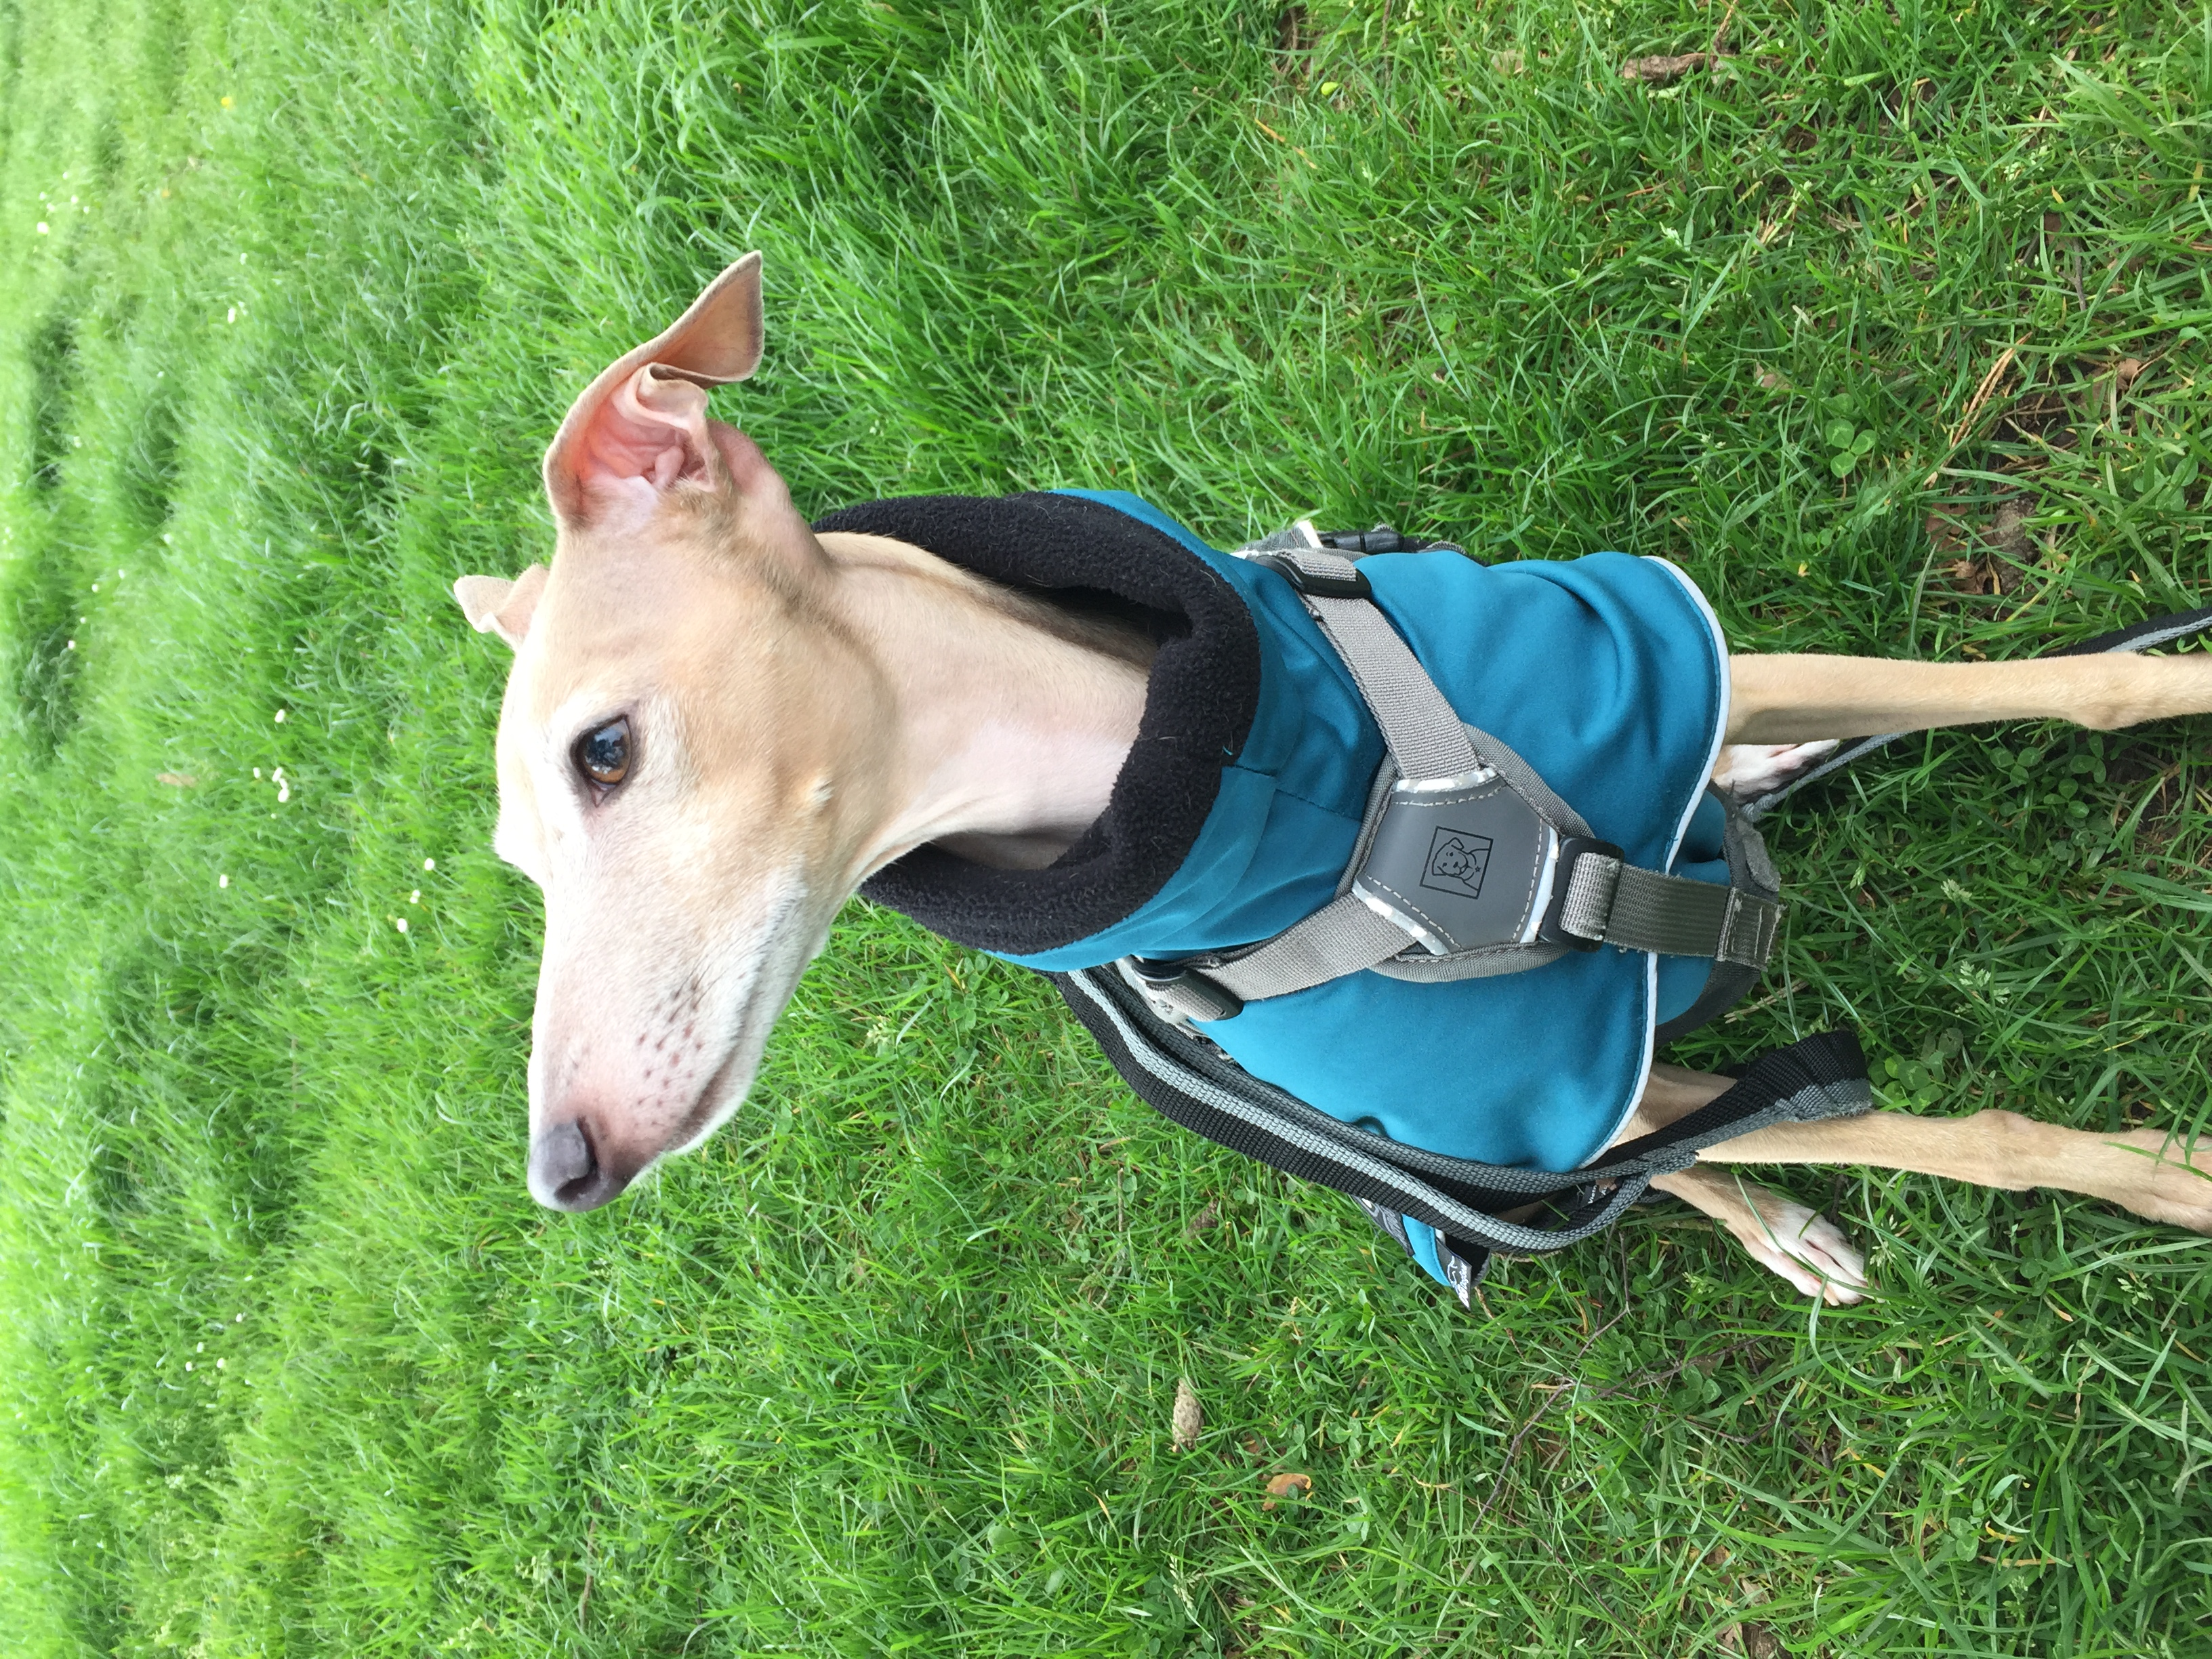 Italian greyhound on dog walk